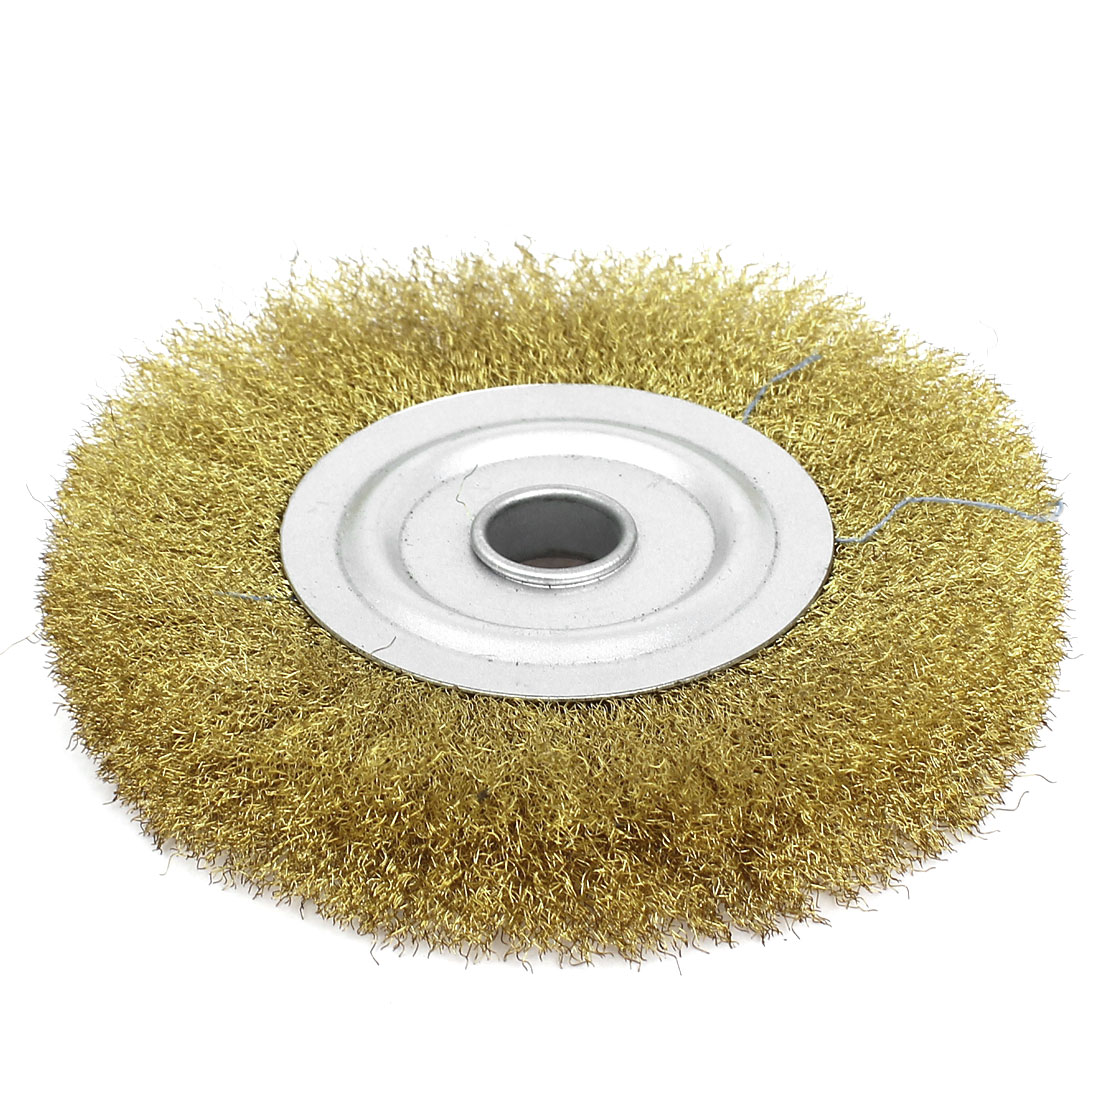 "5/8"" Arbor Crimped Steel Wire Wheel Brush 125mm 5"" Diameter for Angle Grinder"